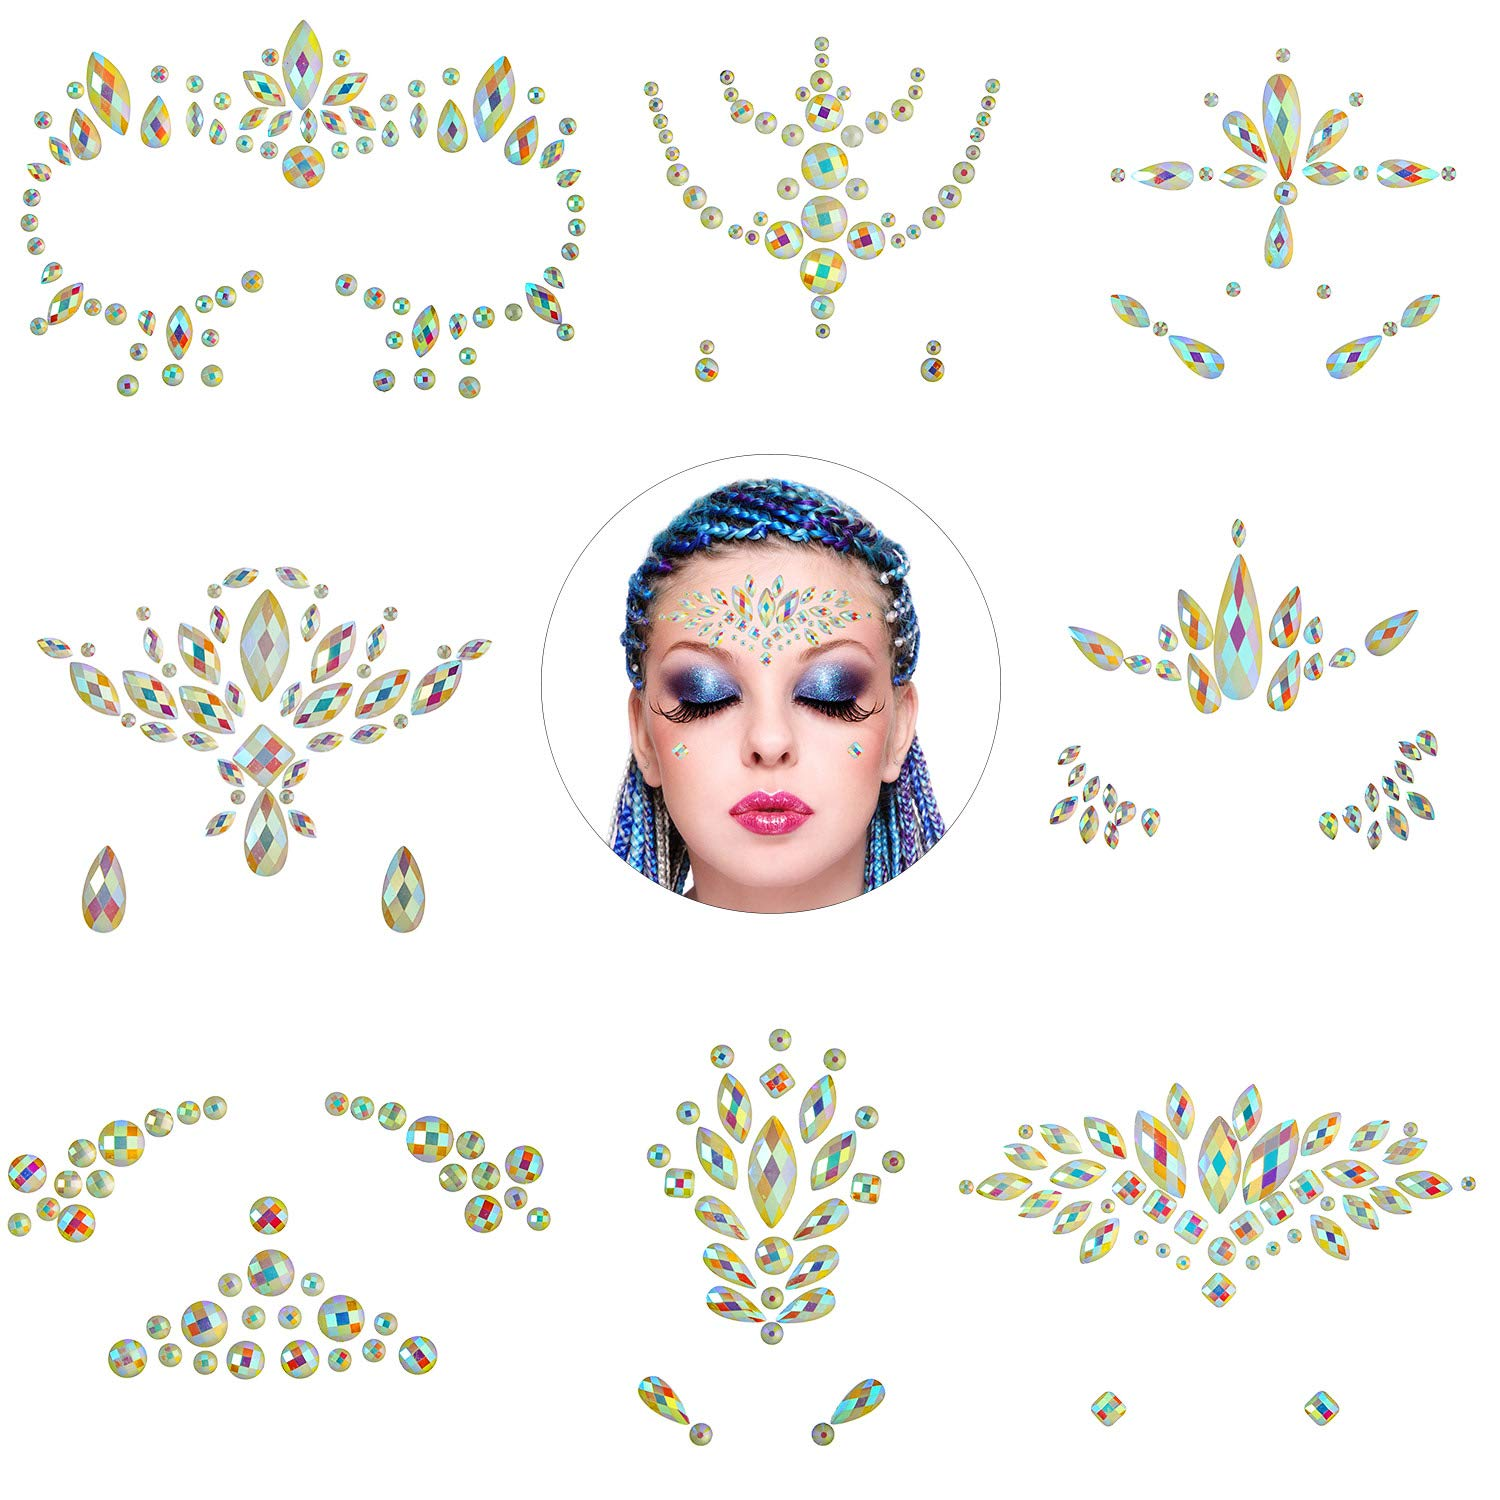 8 Pieces Noctilucent Face Gems Luminous Temporary Tattoo Rhinestone Stickers Waterproof Glitter Face Jewels for Halloween, Party, Rave Festival, Dress-up Decoration